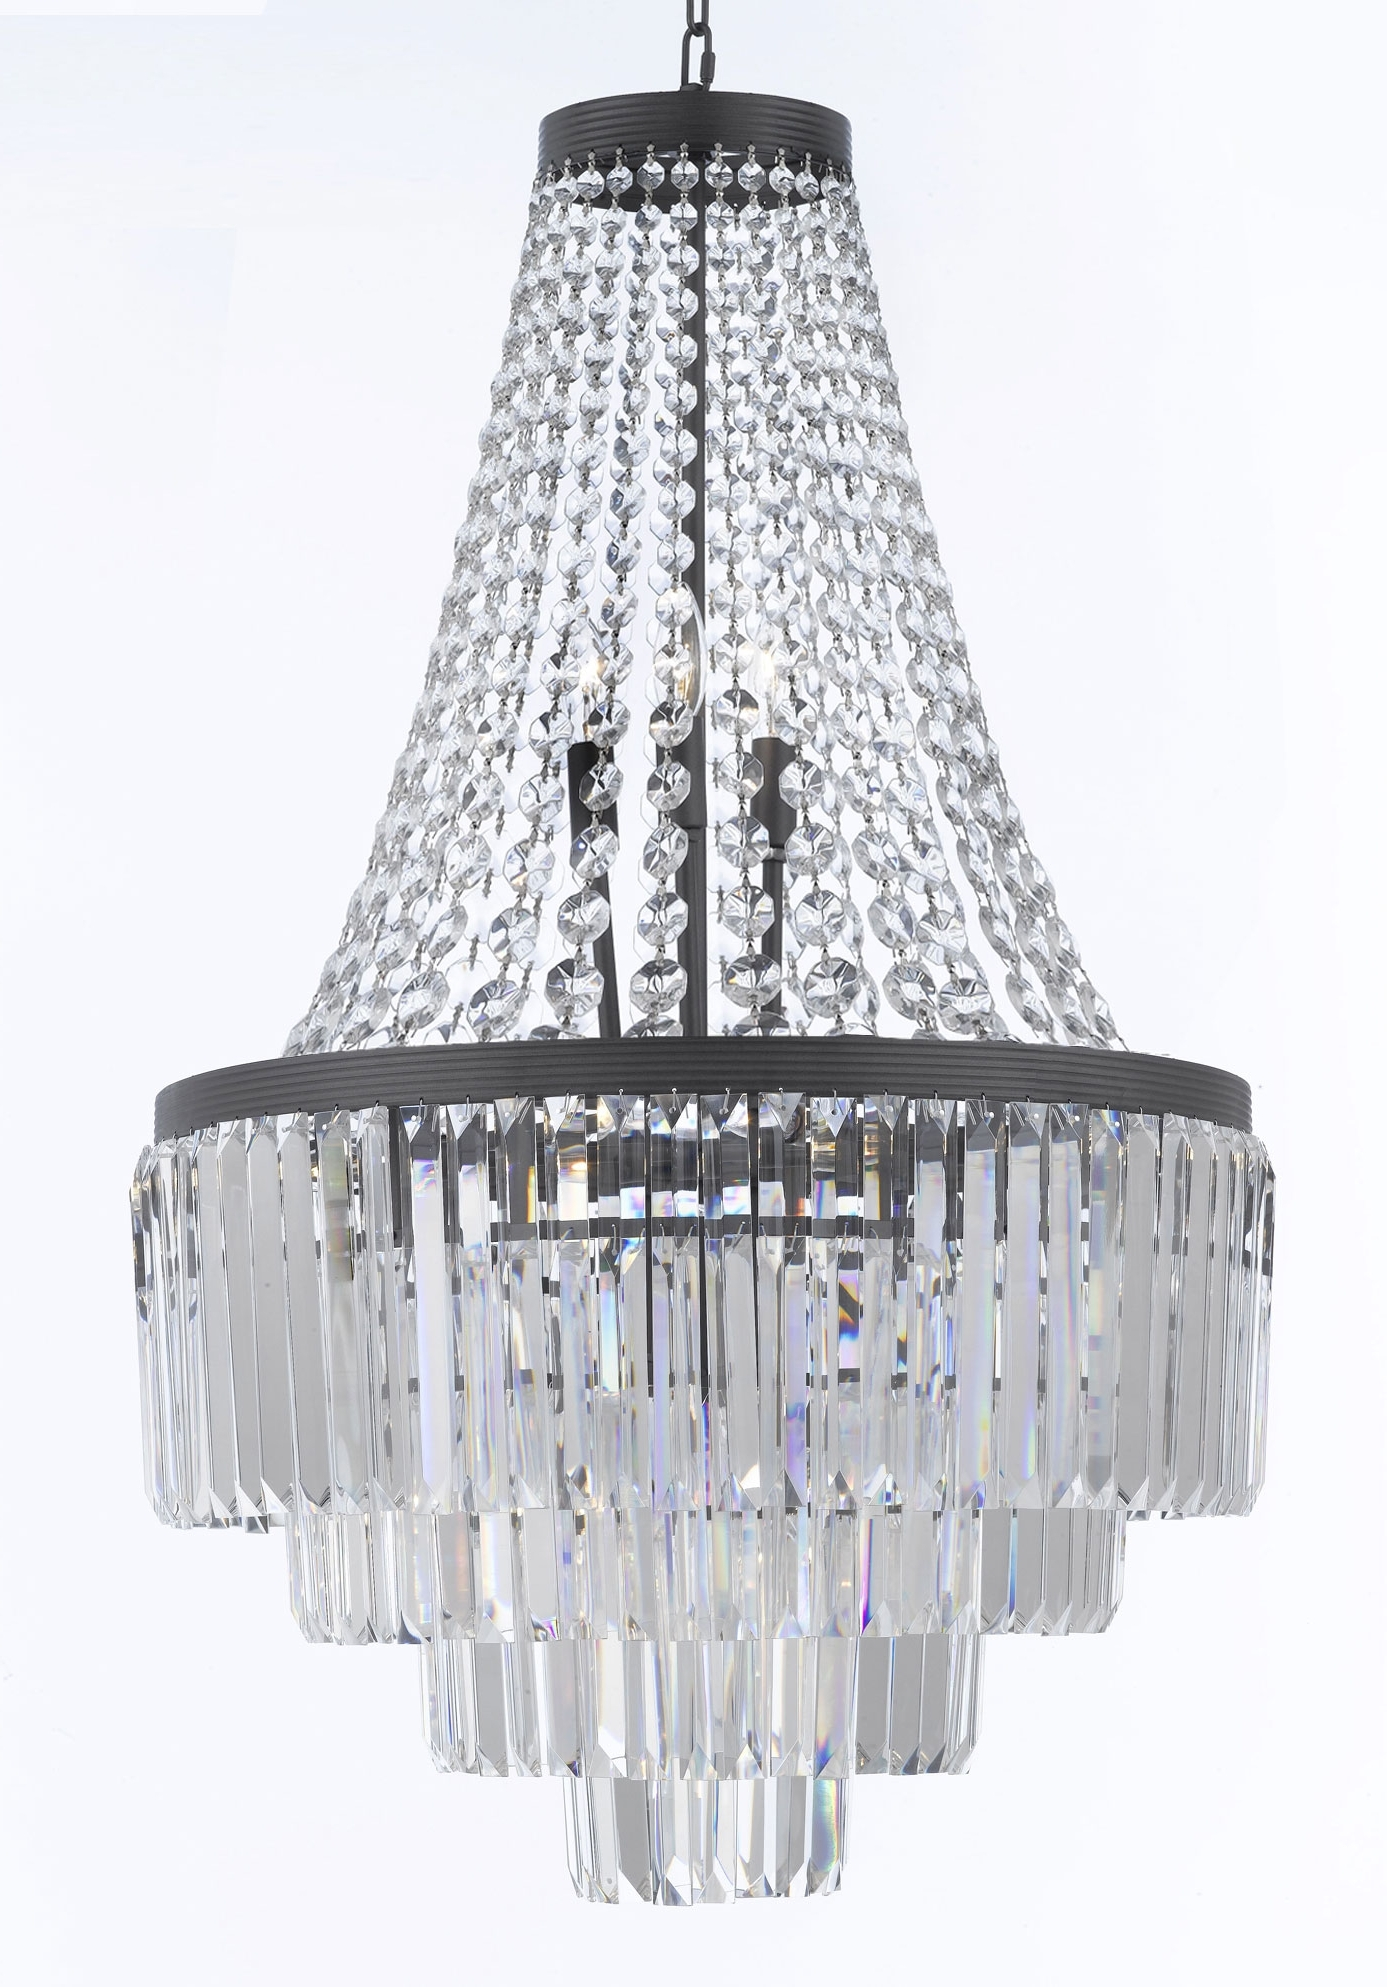 3 Tier Crystal Chandelier In Current G7 1100/9 Gallery Chandeliers Retro Odeon Crystal Glass Fringe (View 8 of 15)